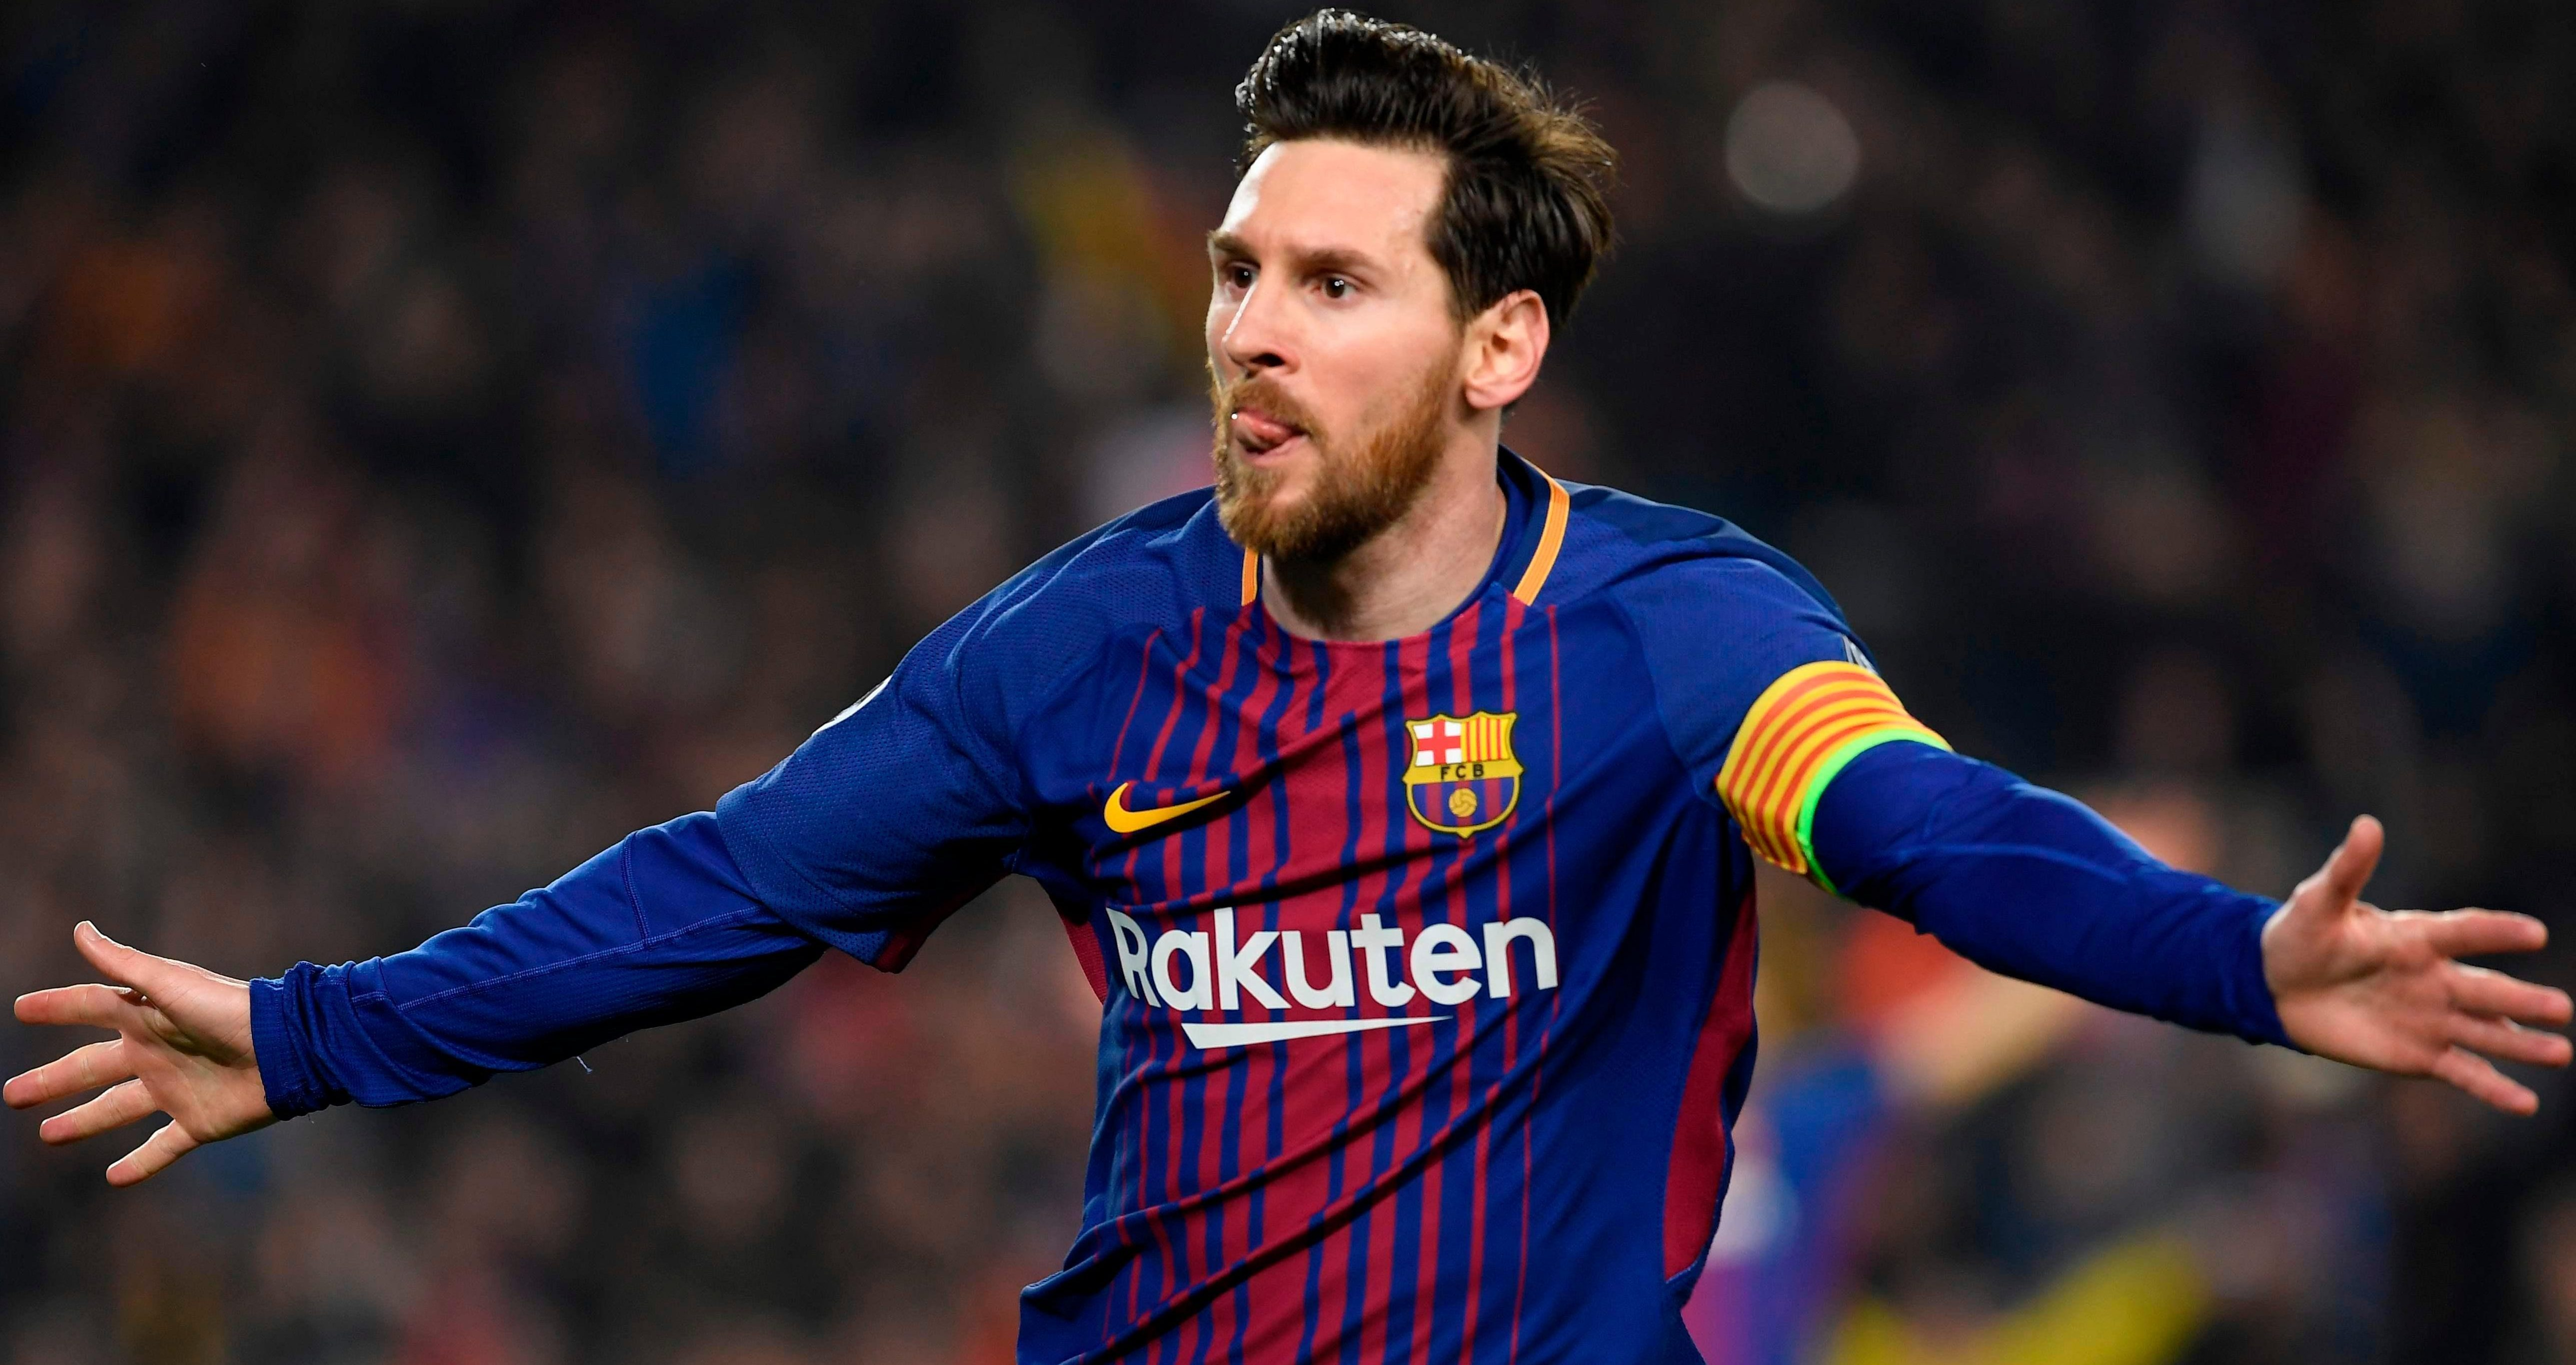 Lionel Messi has scored17 goals in 17 Champions League appearances for Barcelona this season